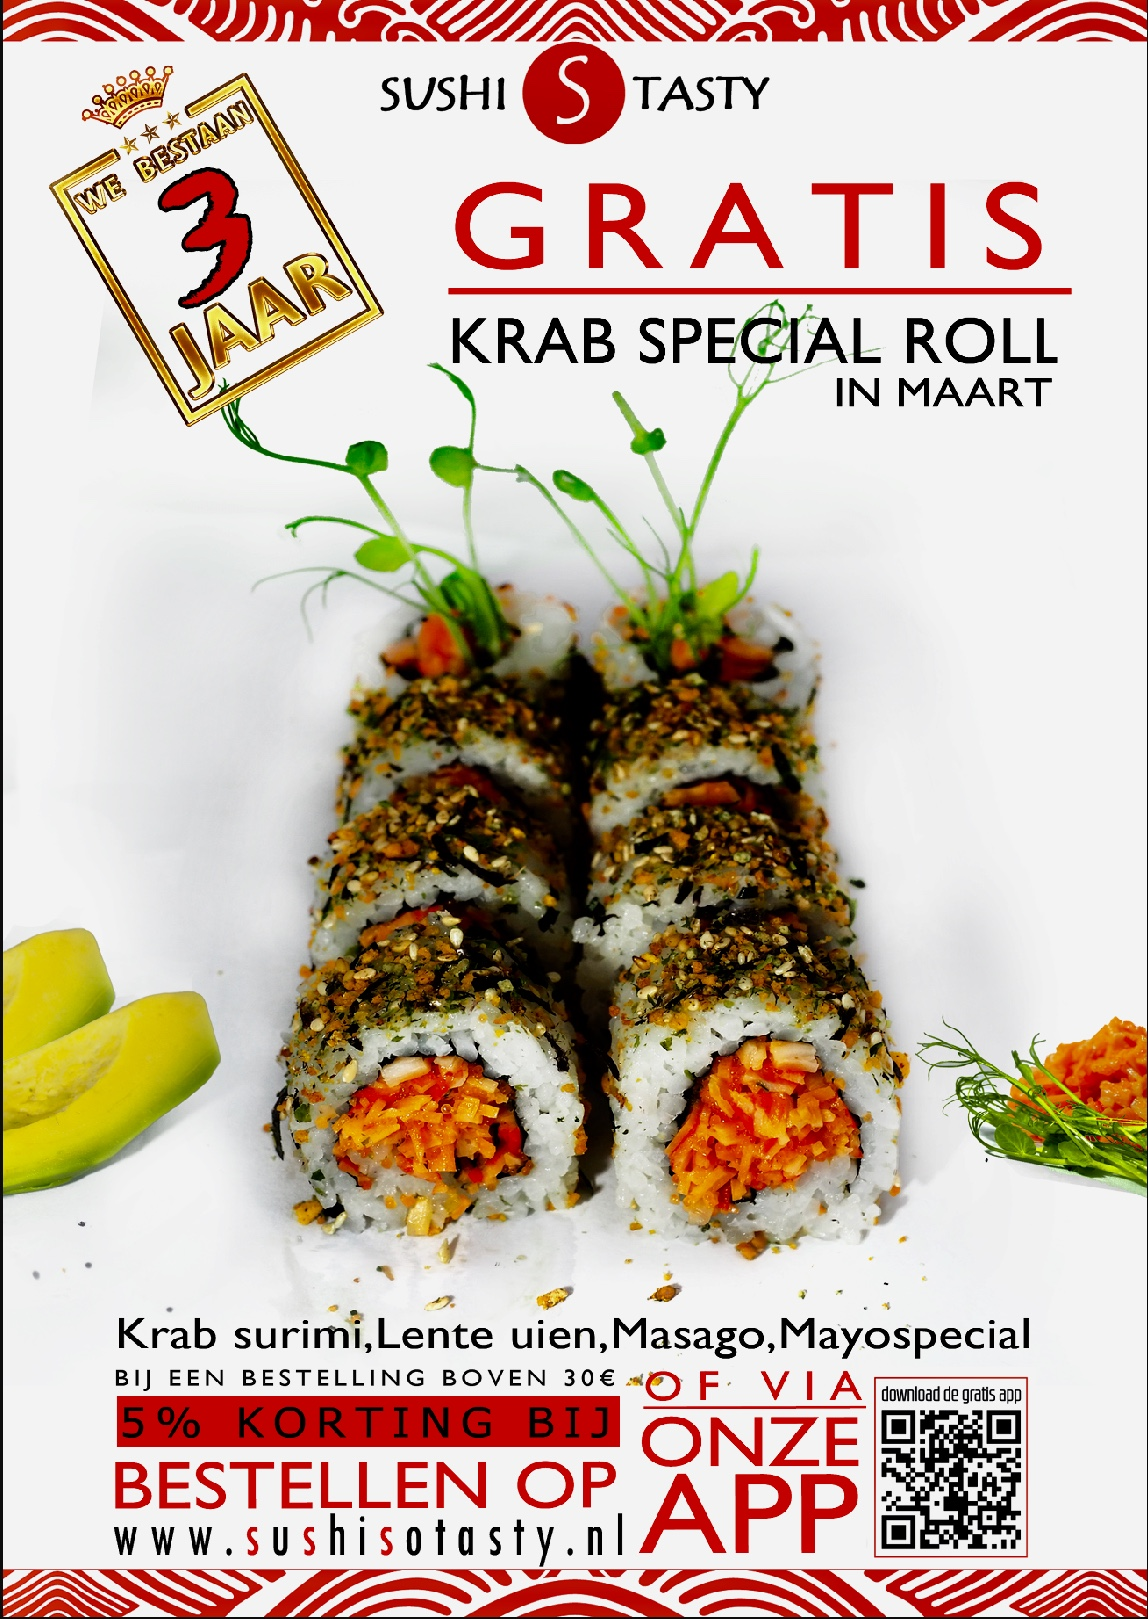 Crab Specail Roll